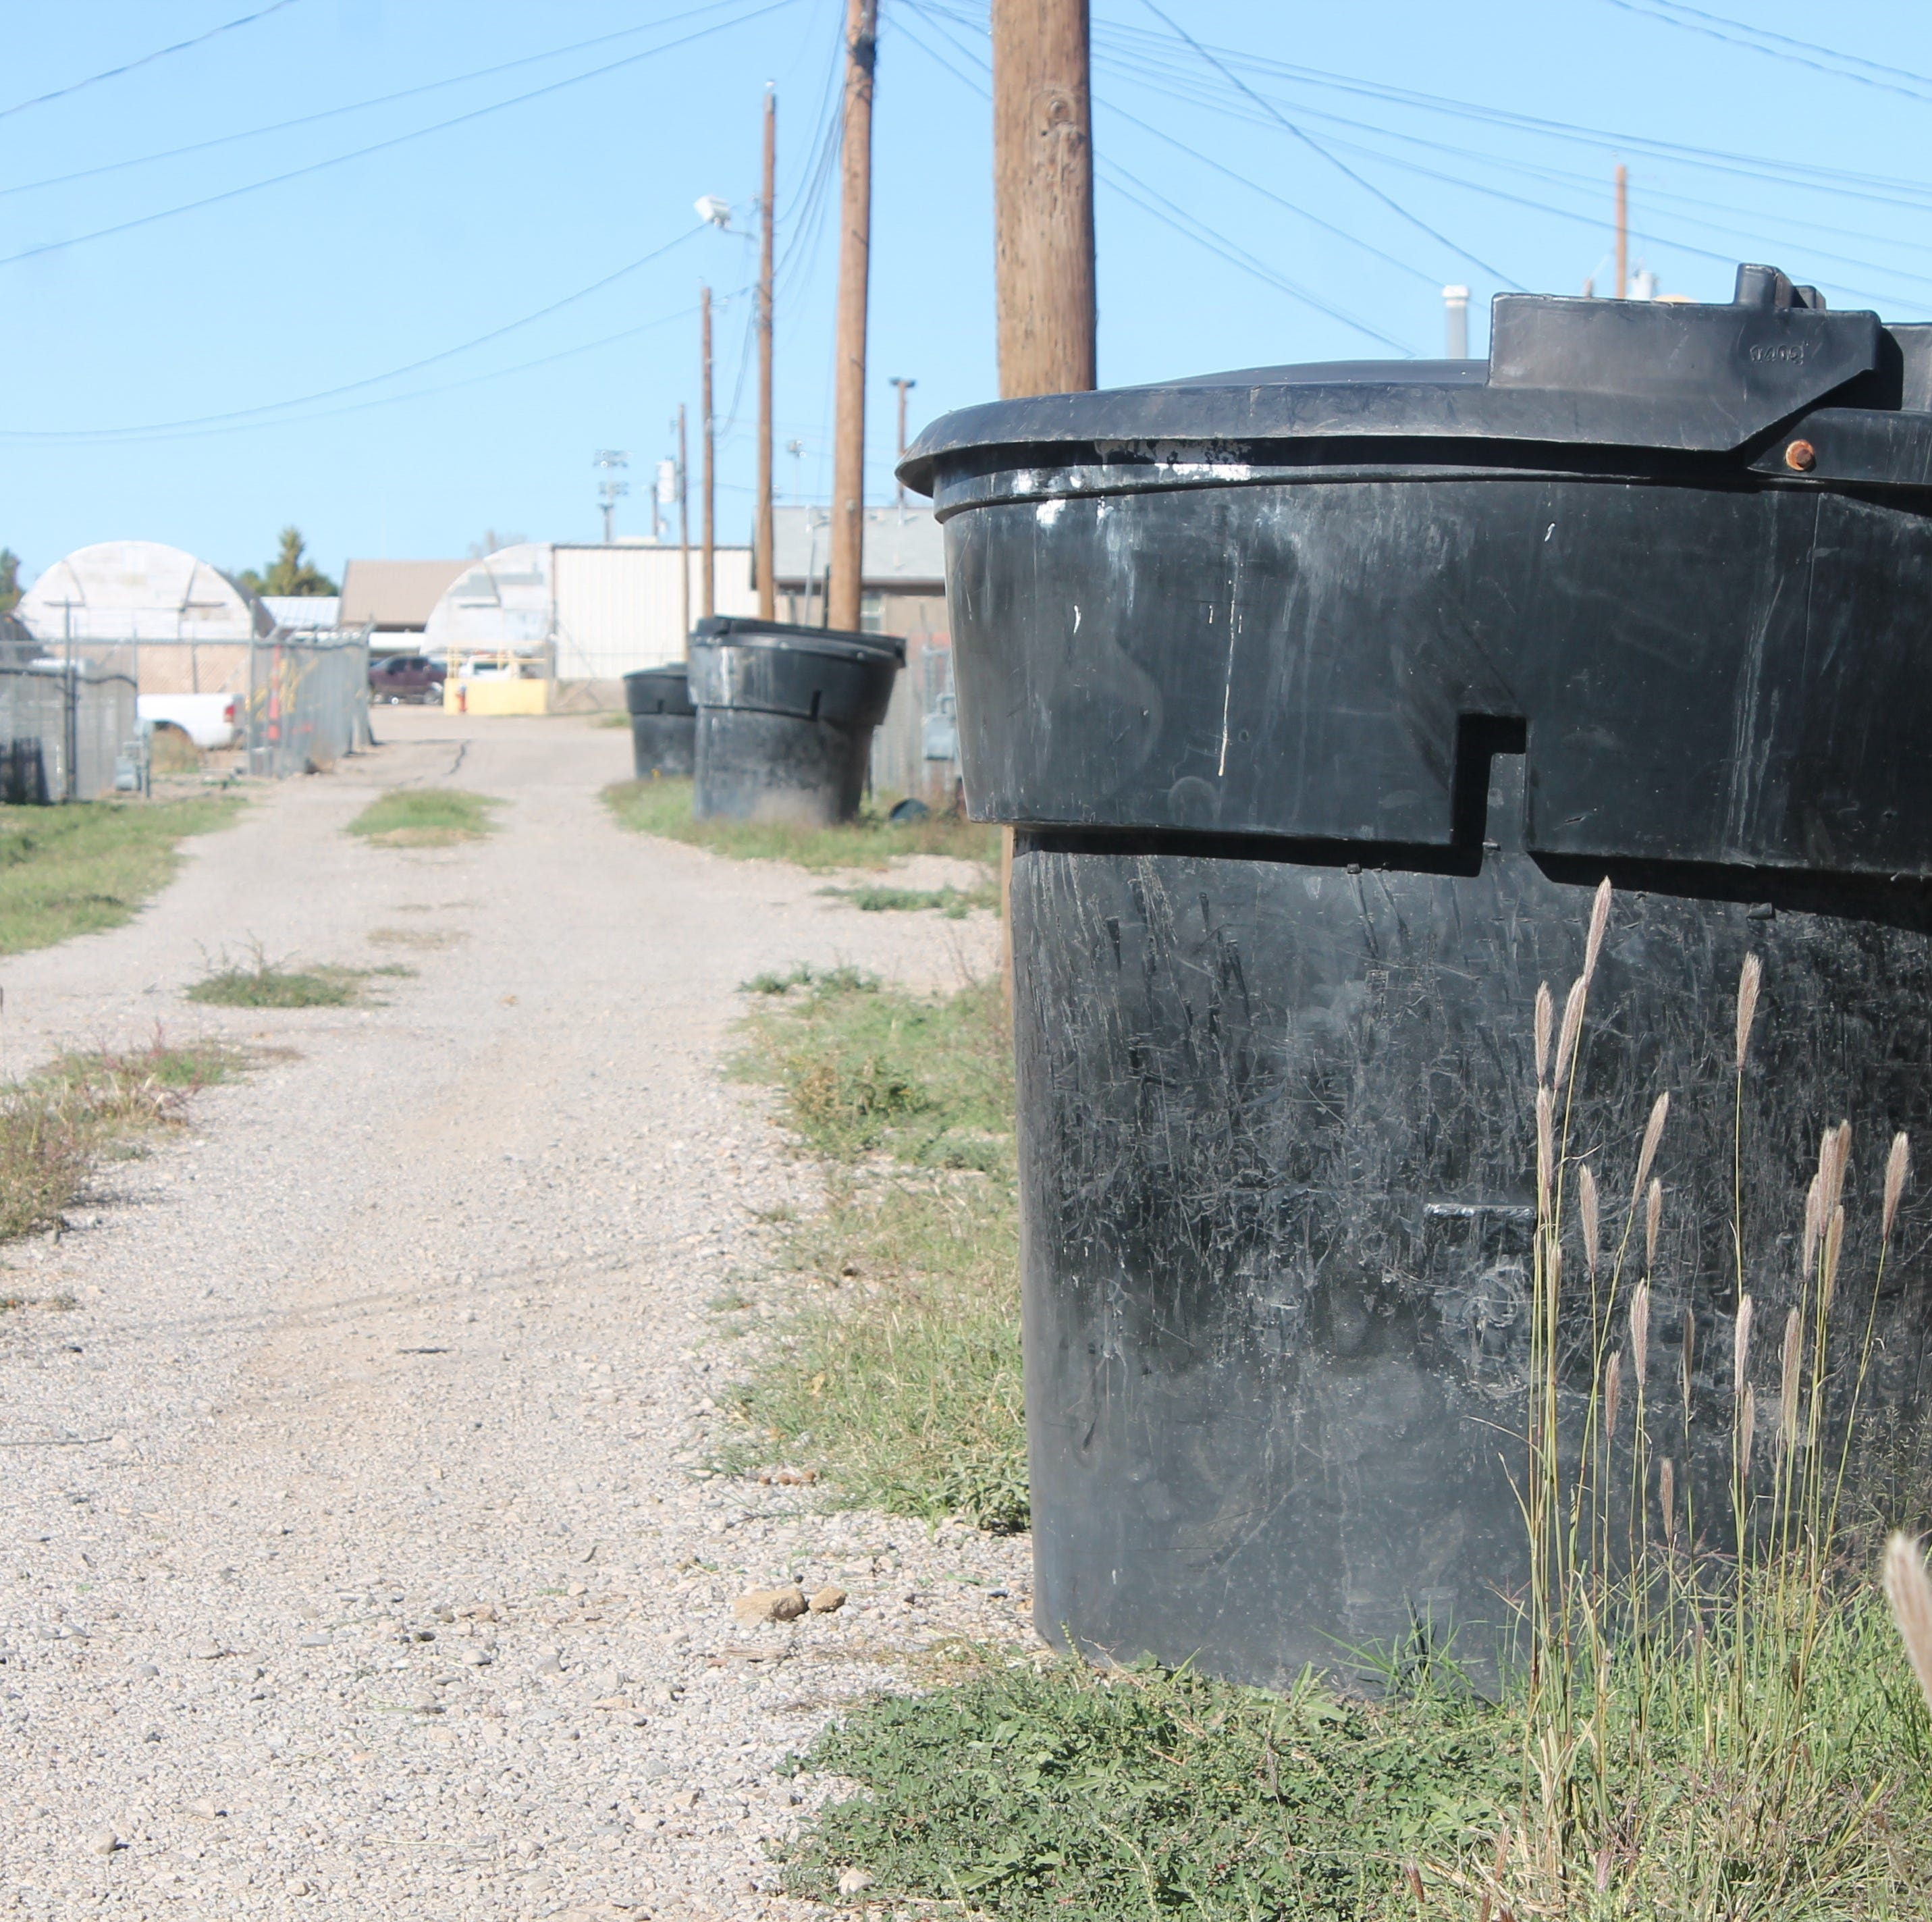 Alamogordo's trash collection rates will increase starting next year